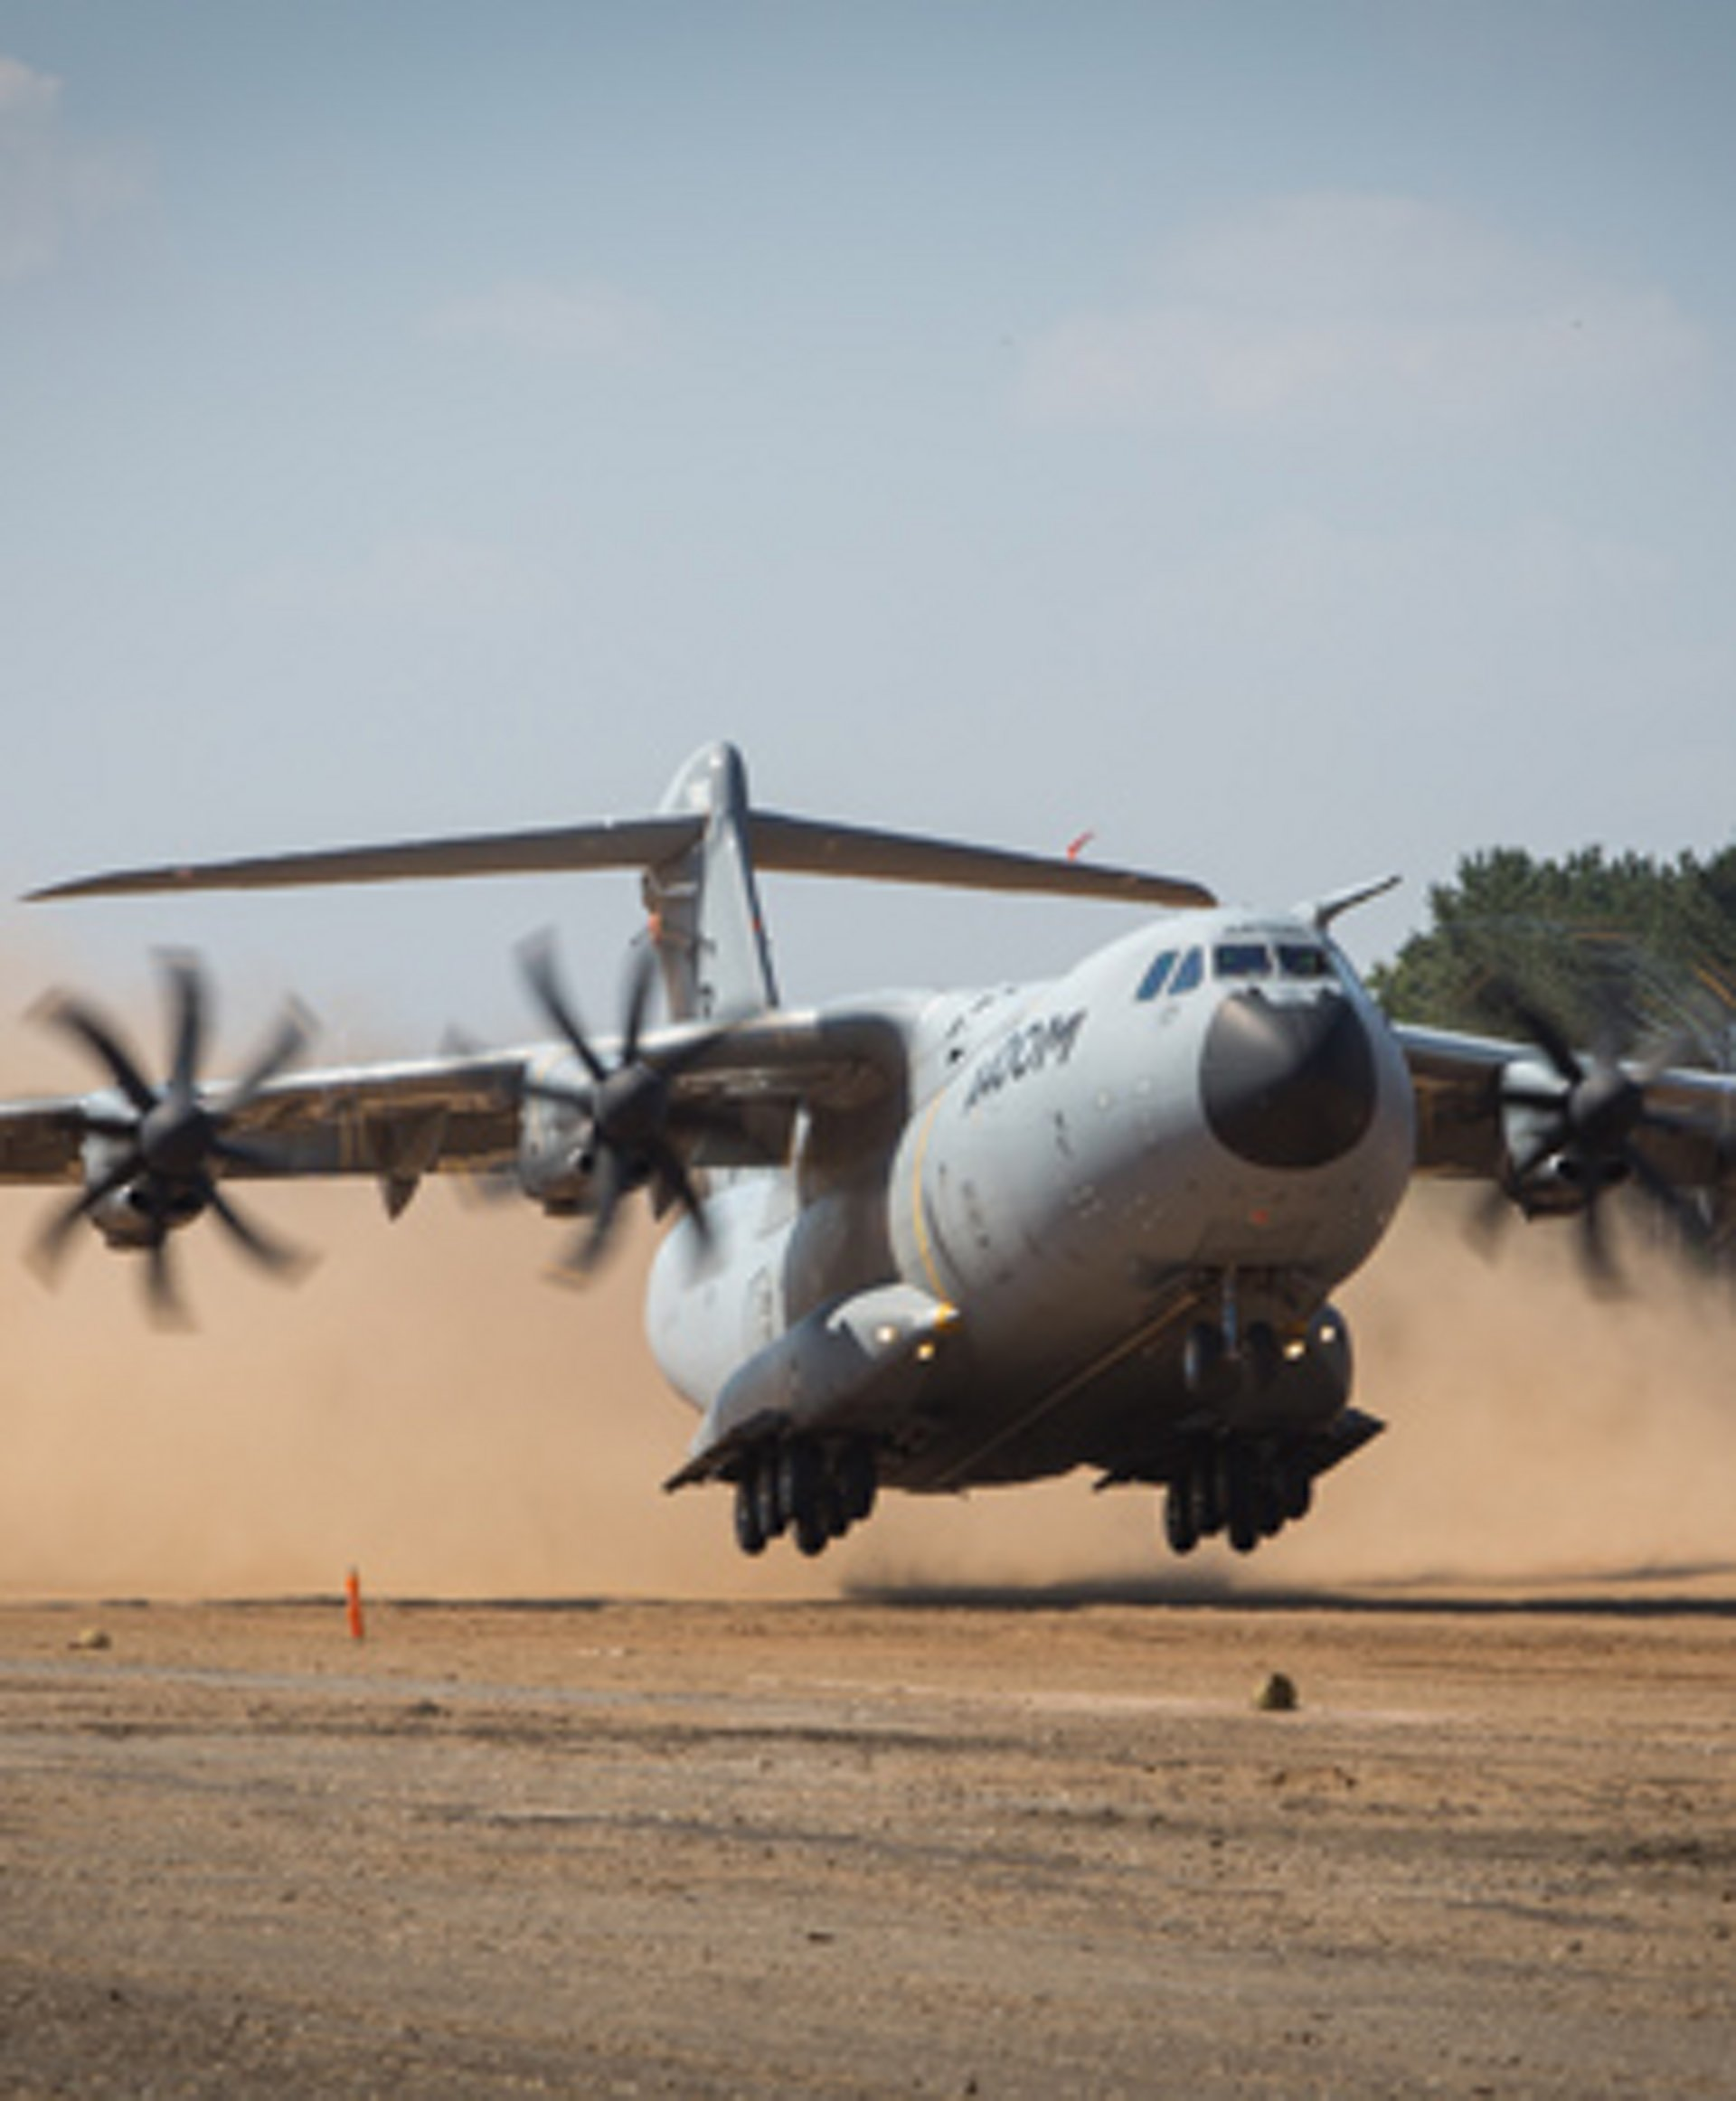 A400M demonstrates sand runway capability